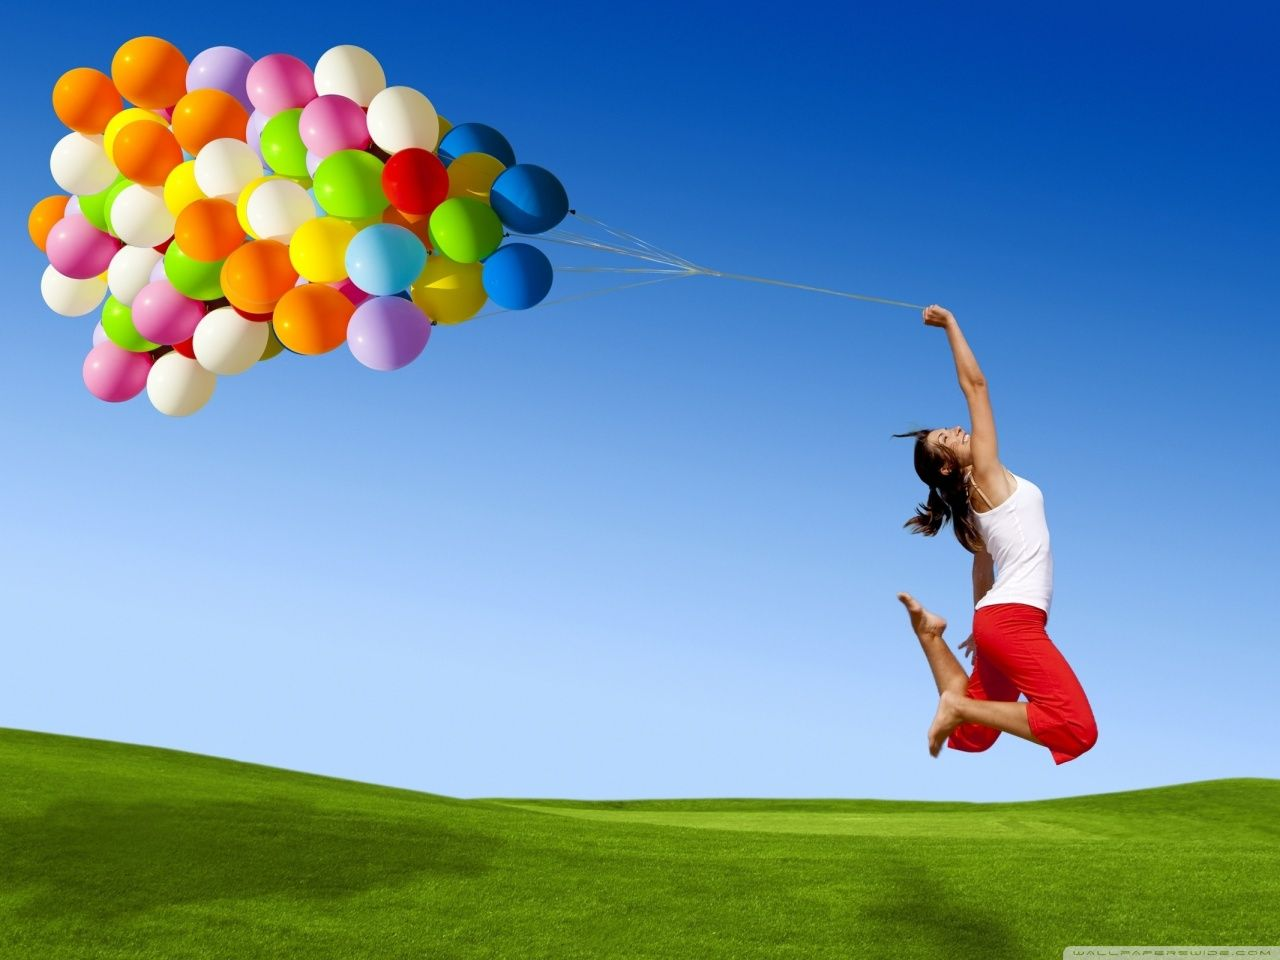 Happiness does not depend on outward things, but on the way we see ...